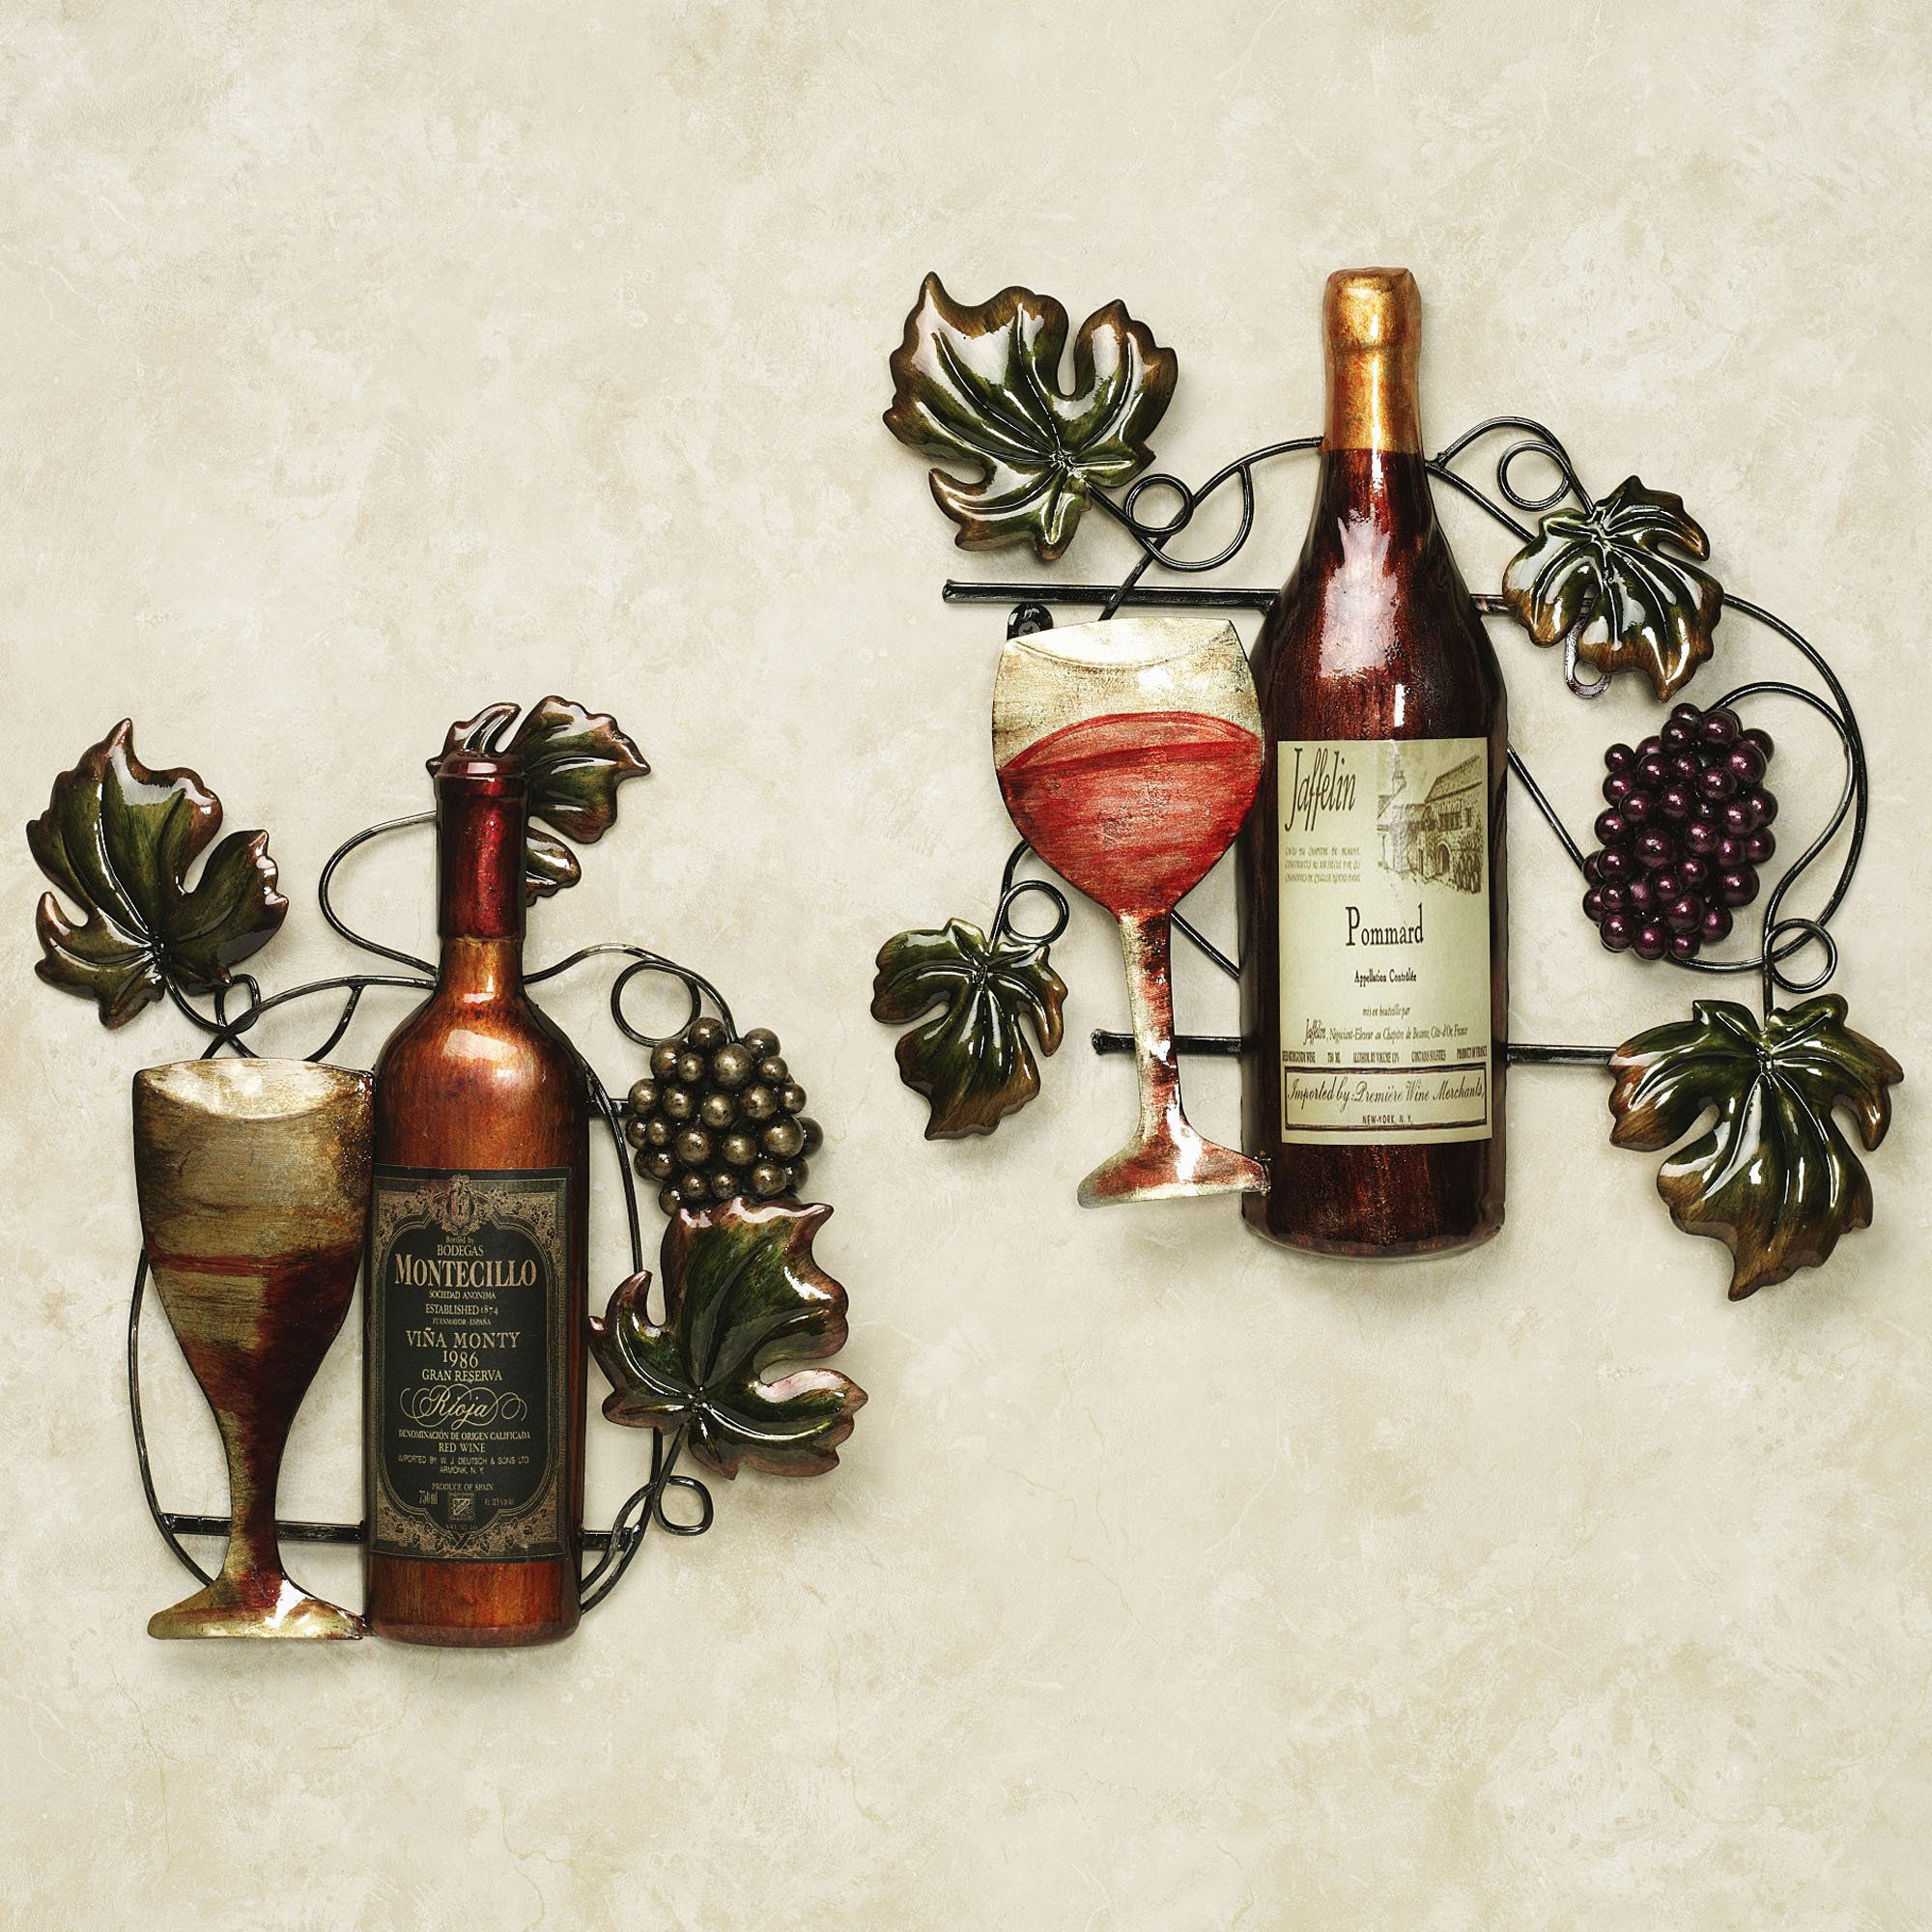 Wine Theme Kitchen Decor Is A Fantastic Way To Make A Lasting Impression On Your Family